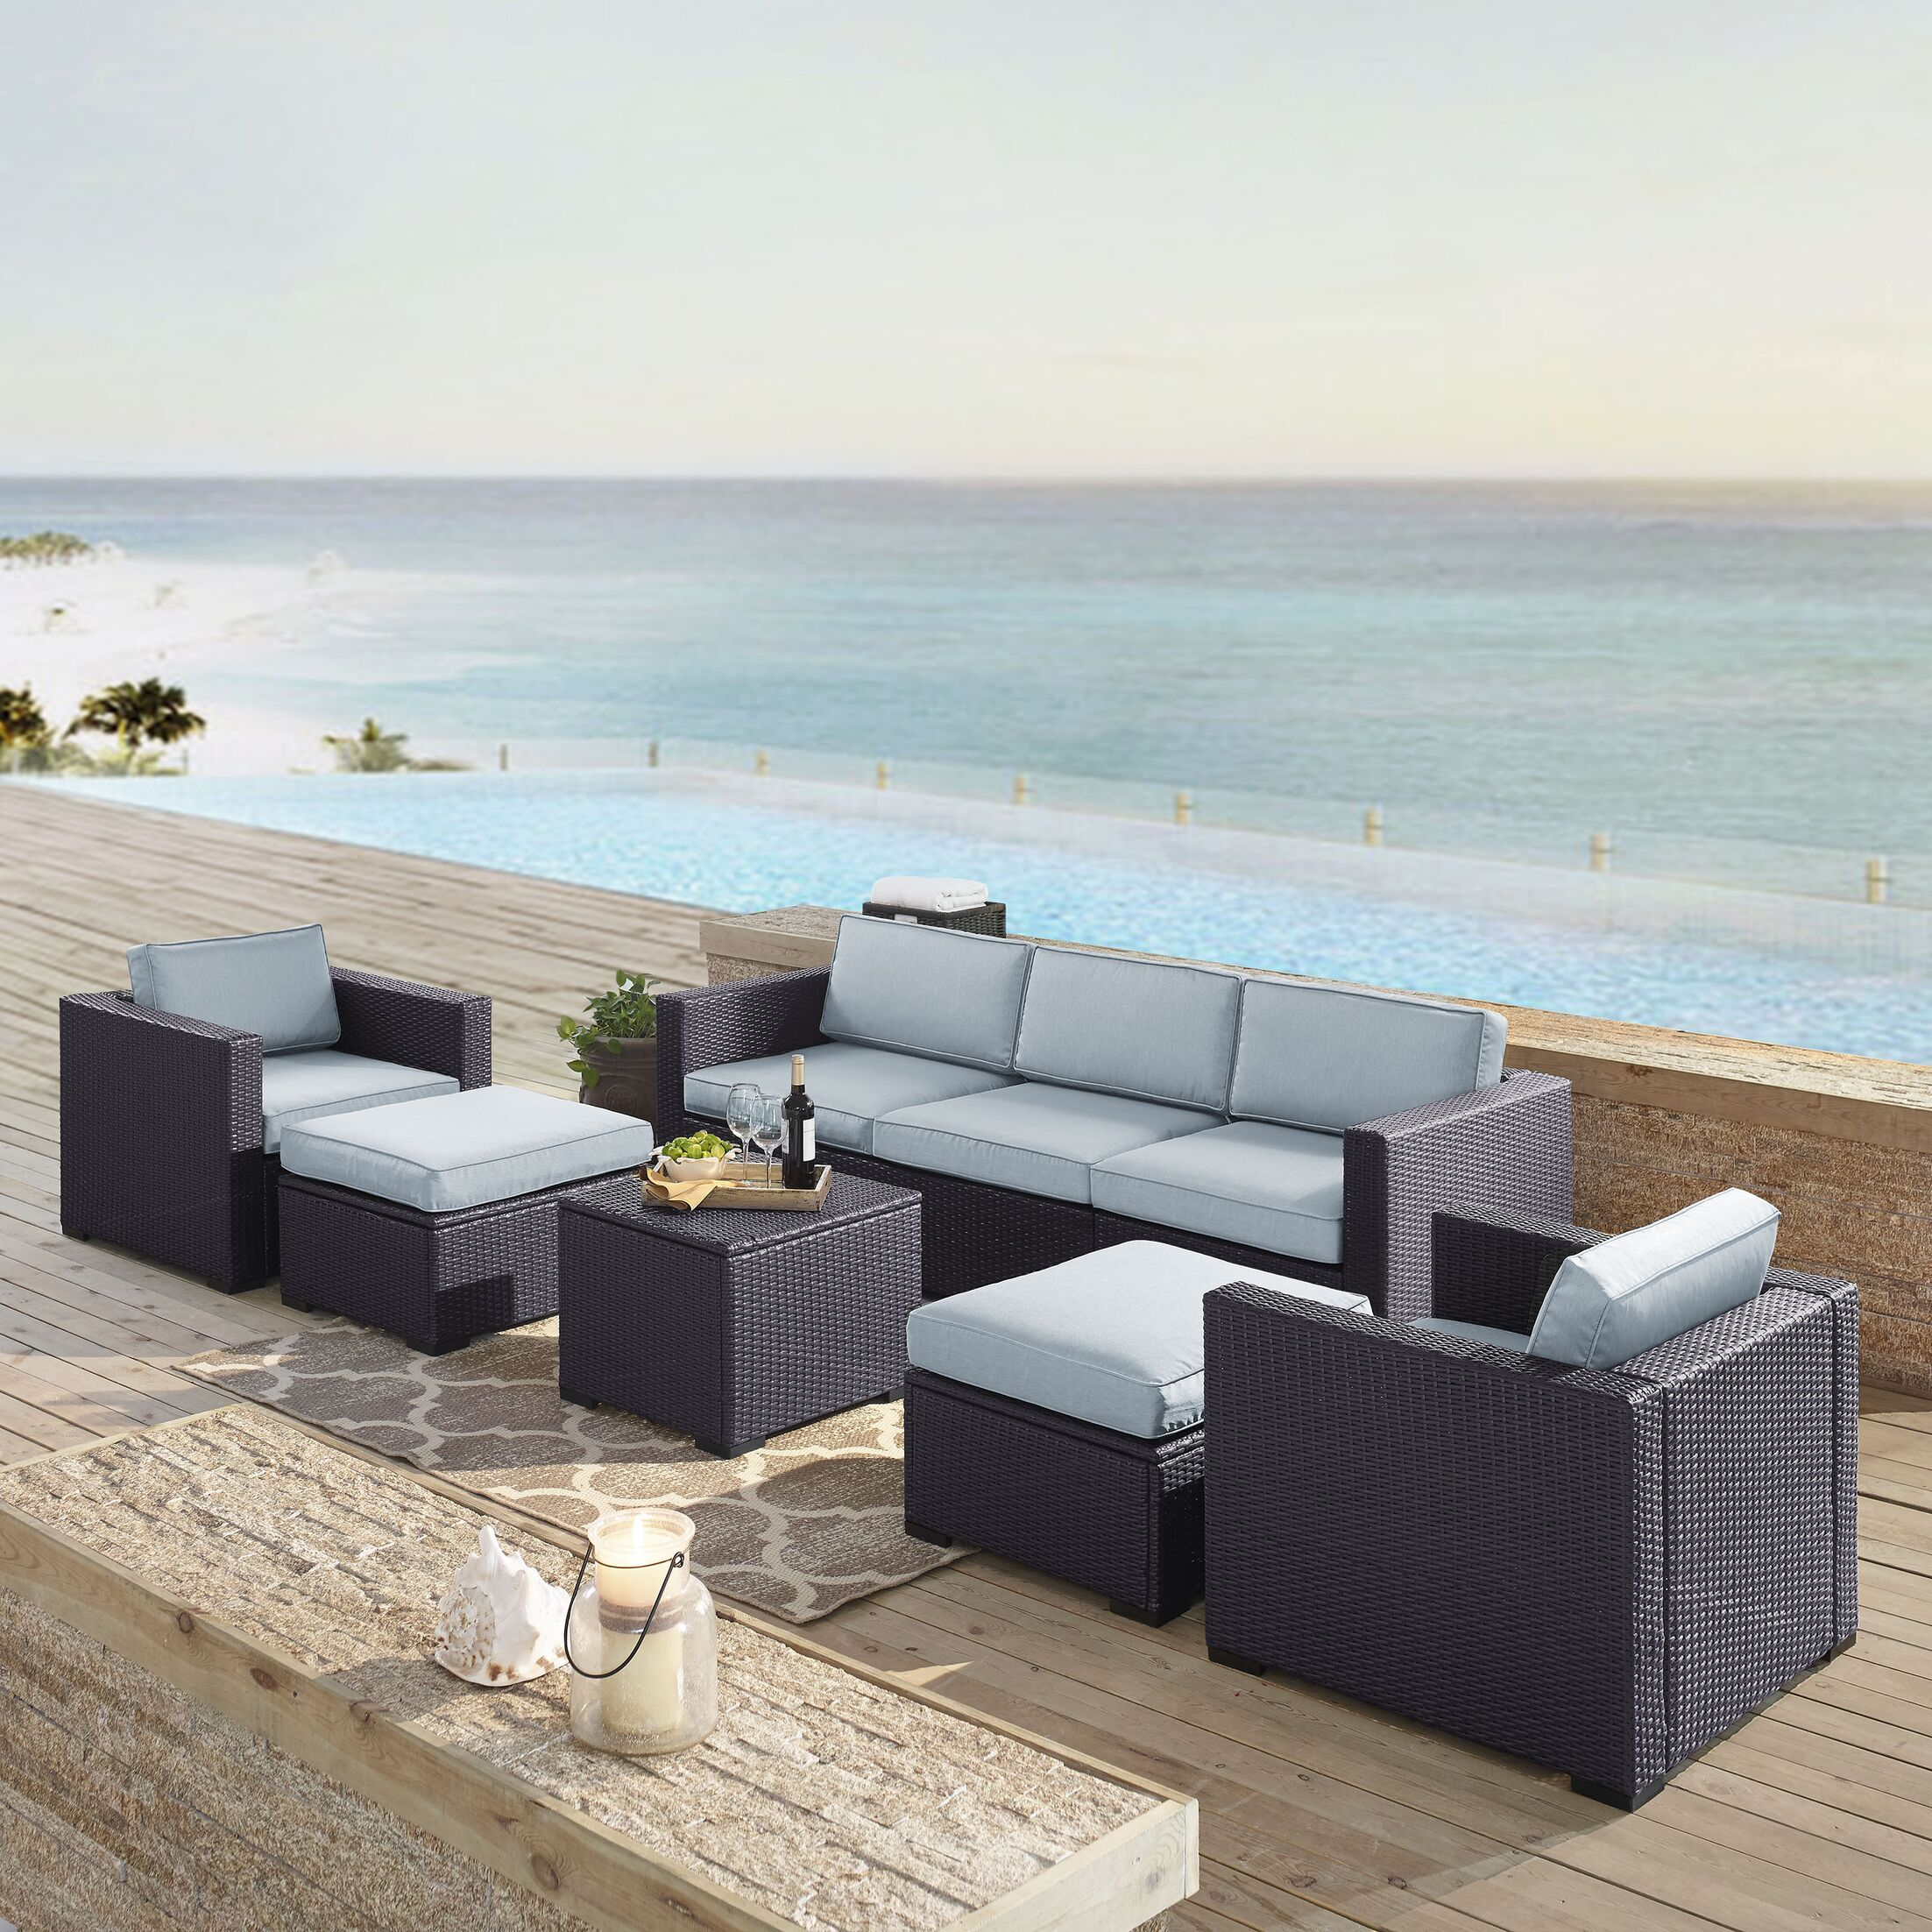 Dinah 7 Piece Sectional Set with Cushions Fabric: Mist